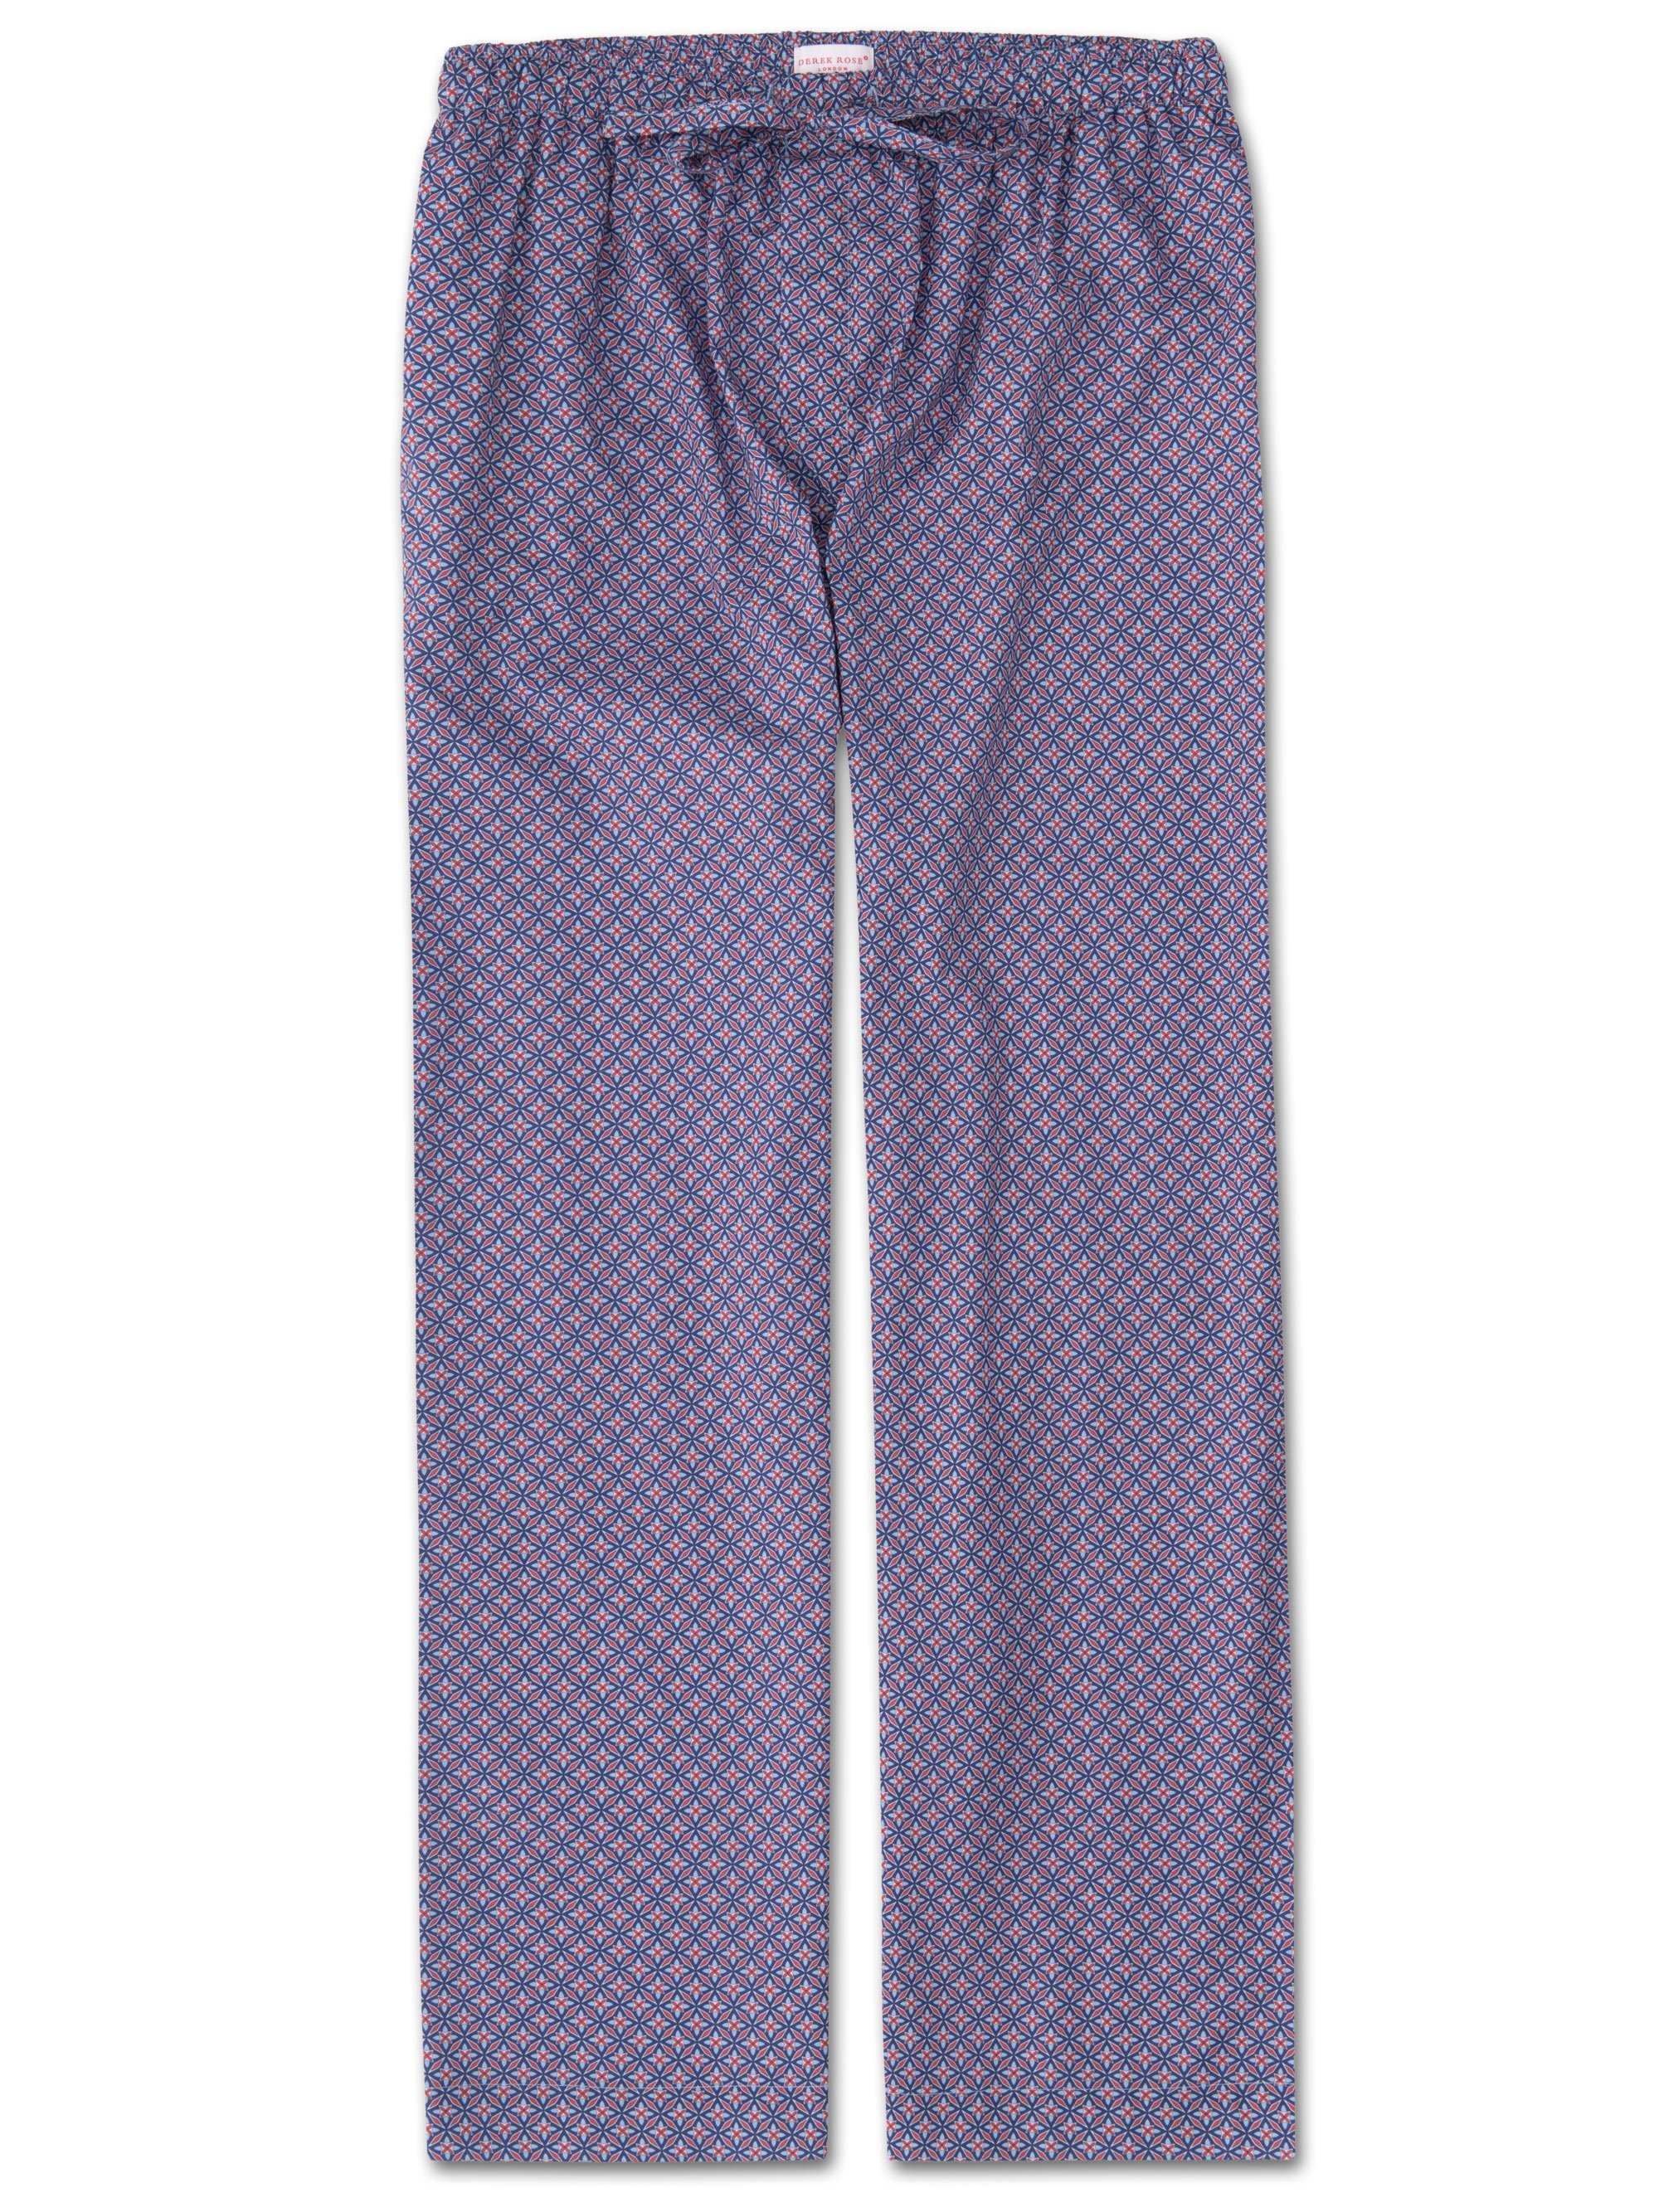 Men's Lounge Trousers Ledbury 21 Cotton Batiste Red